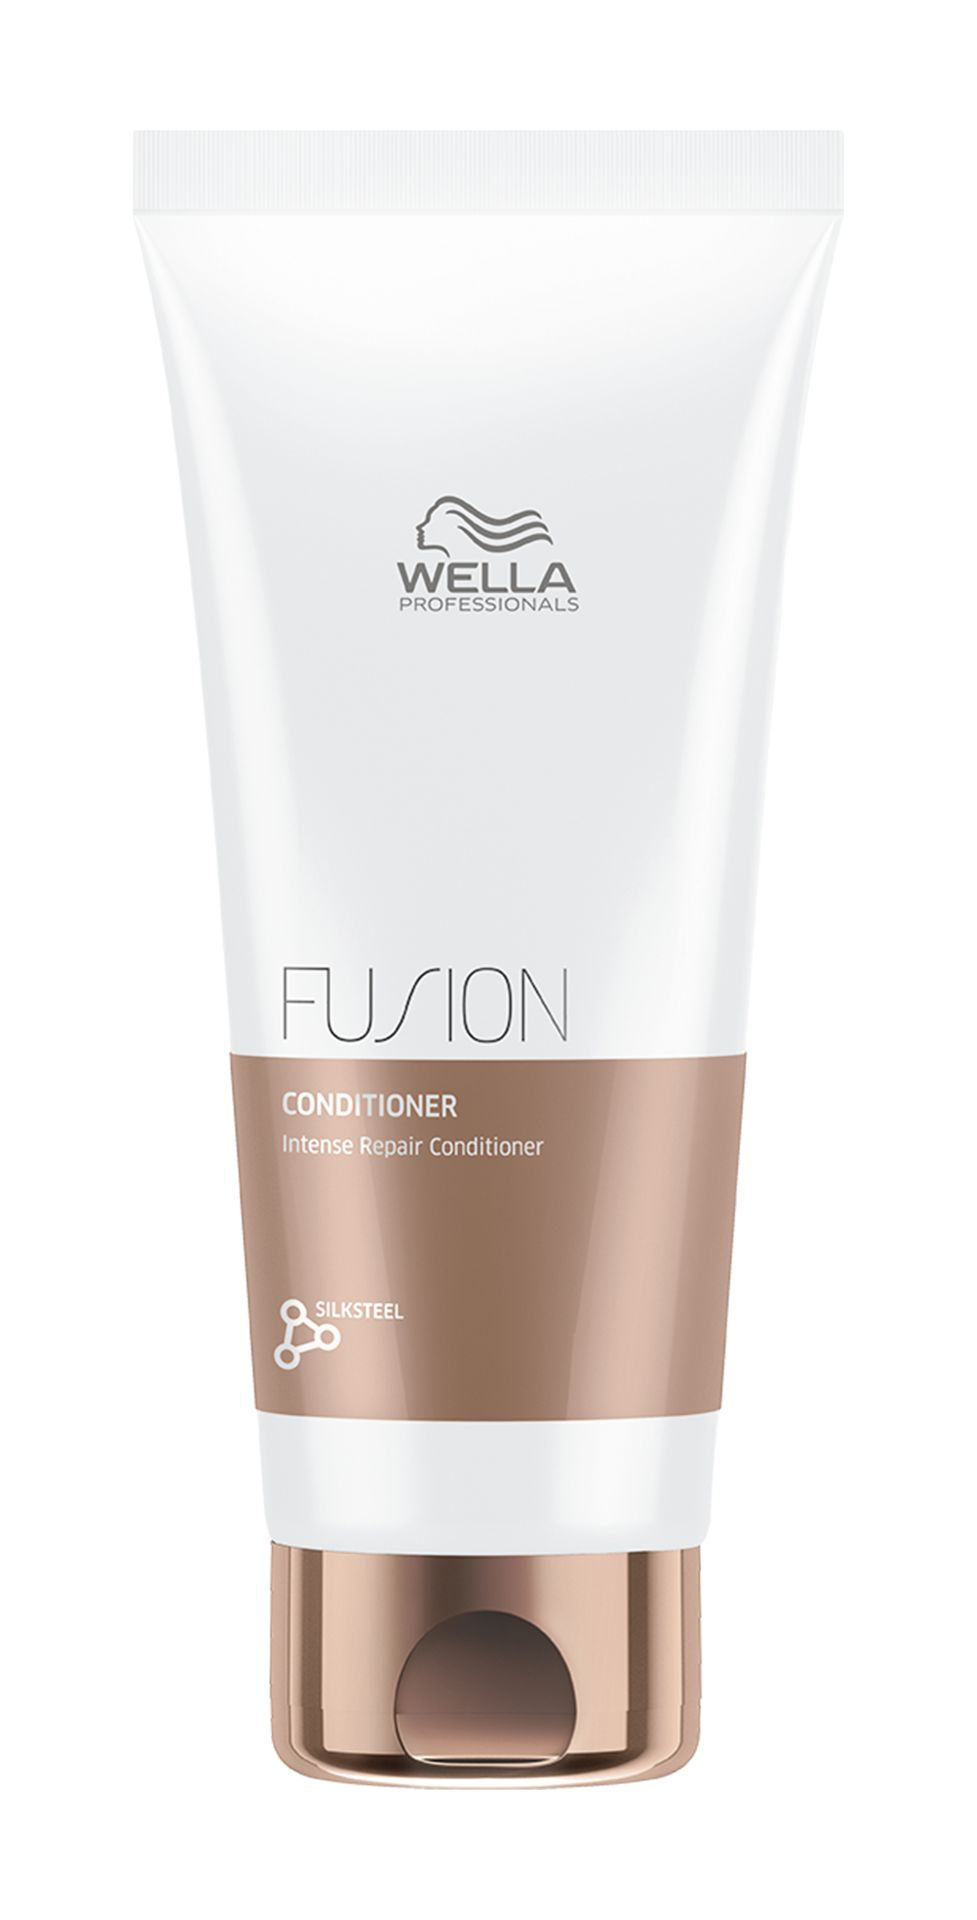 WELLA Fusion Intense Repair Conditioner Бальзам интенсивный восстанавливающий (200 ml) 81616676